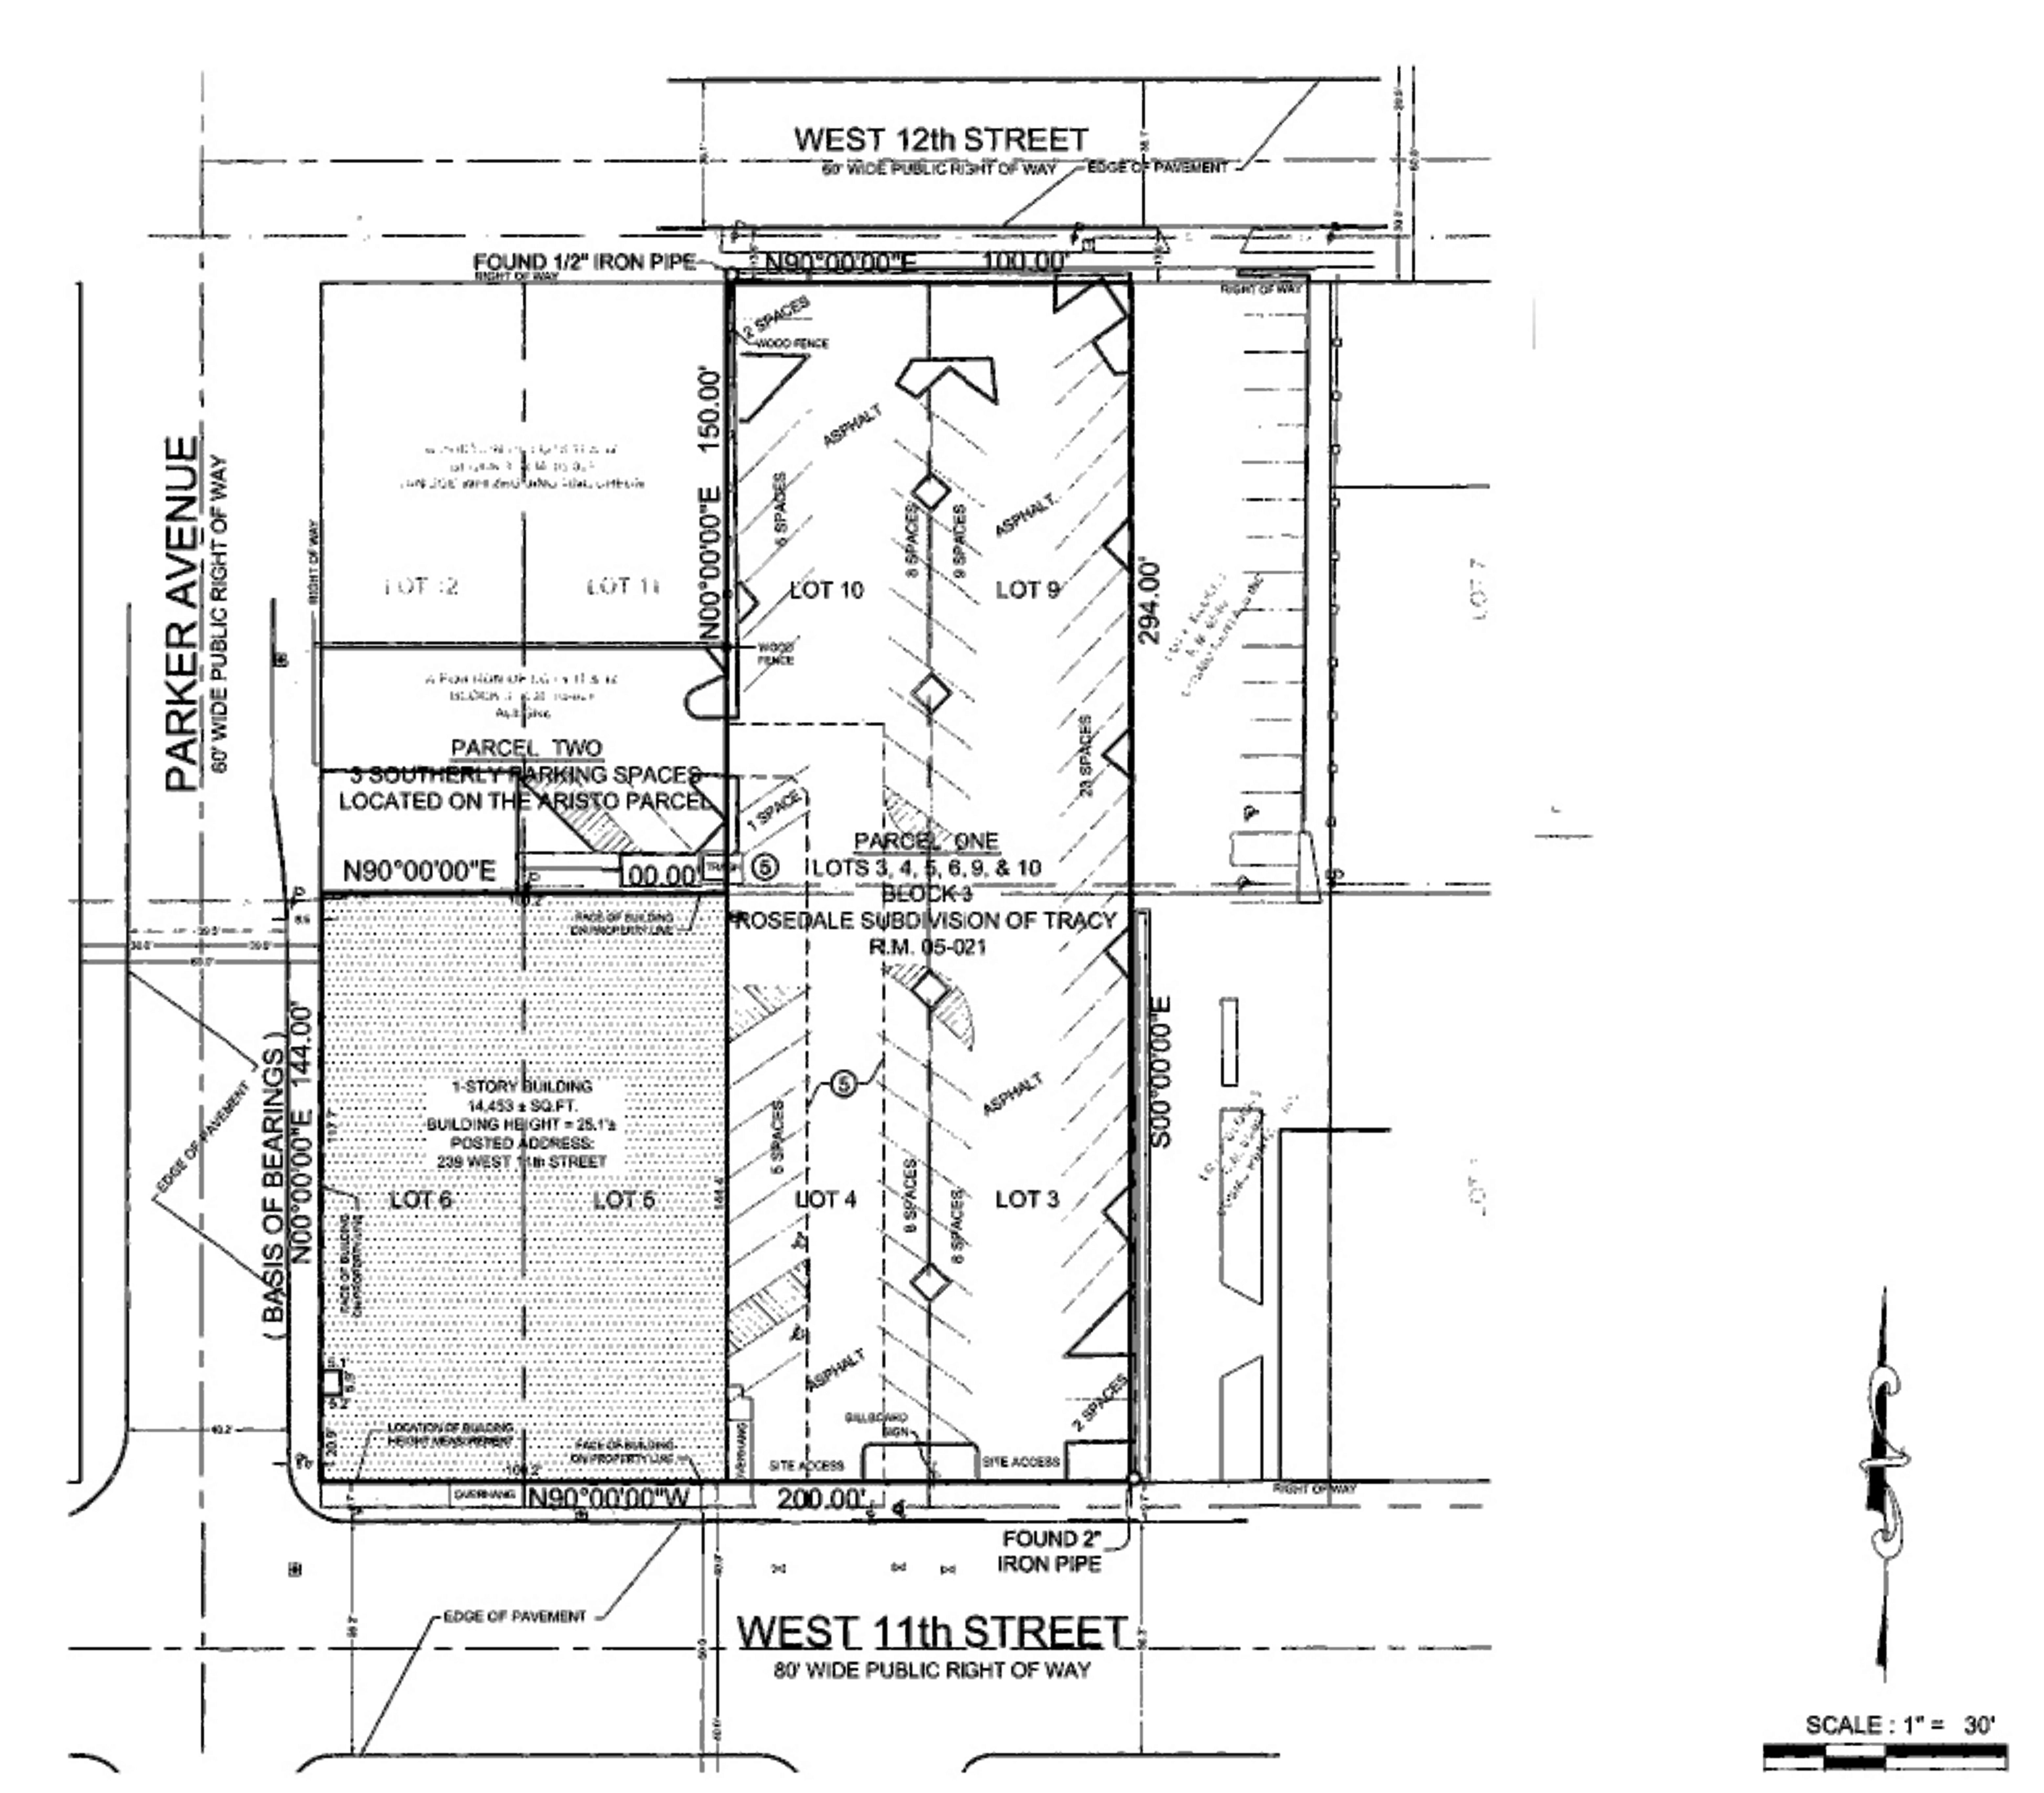 Former Fitness Facility - 239 W 11th St: site plan